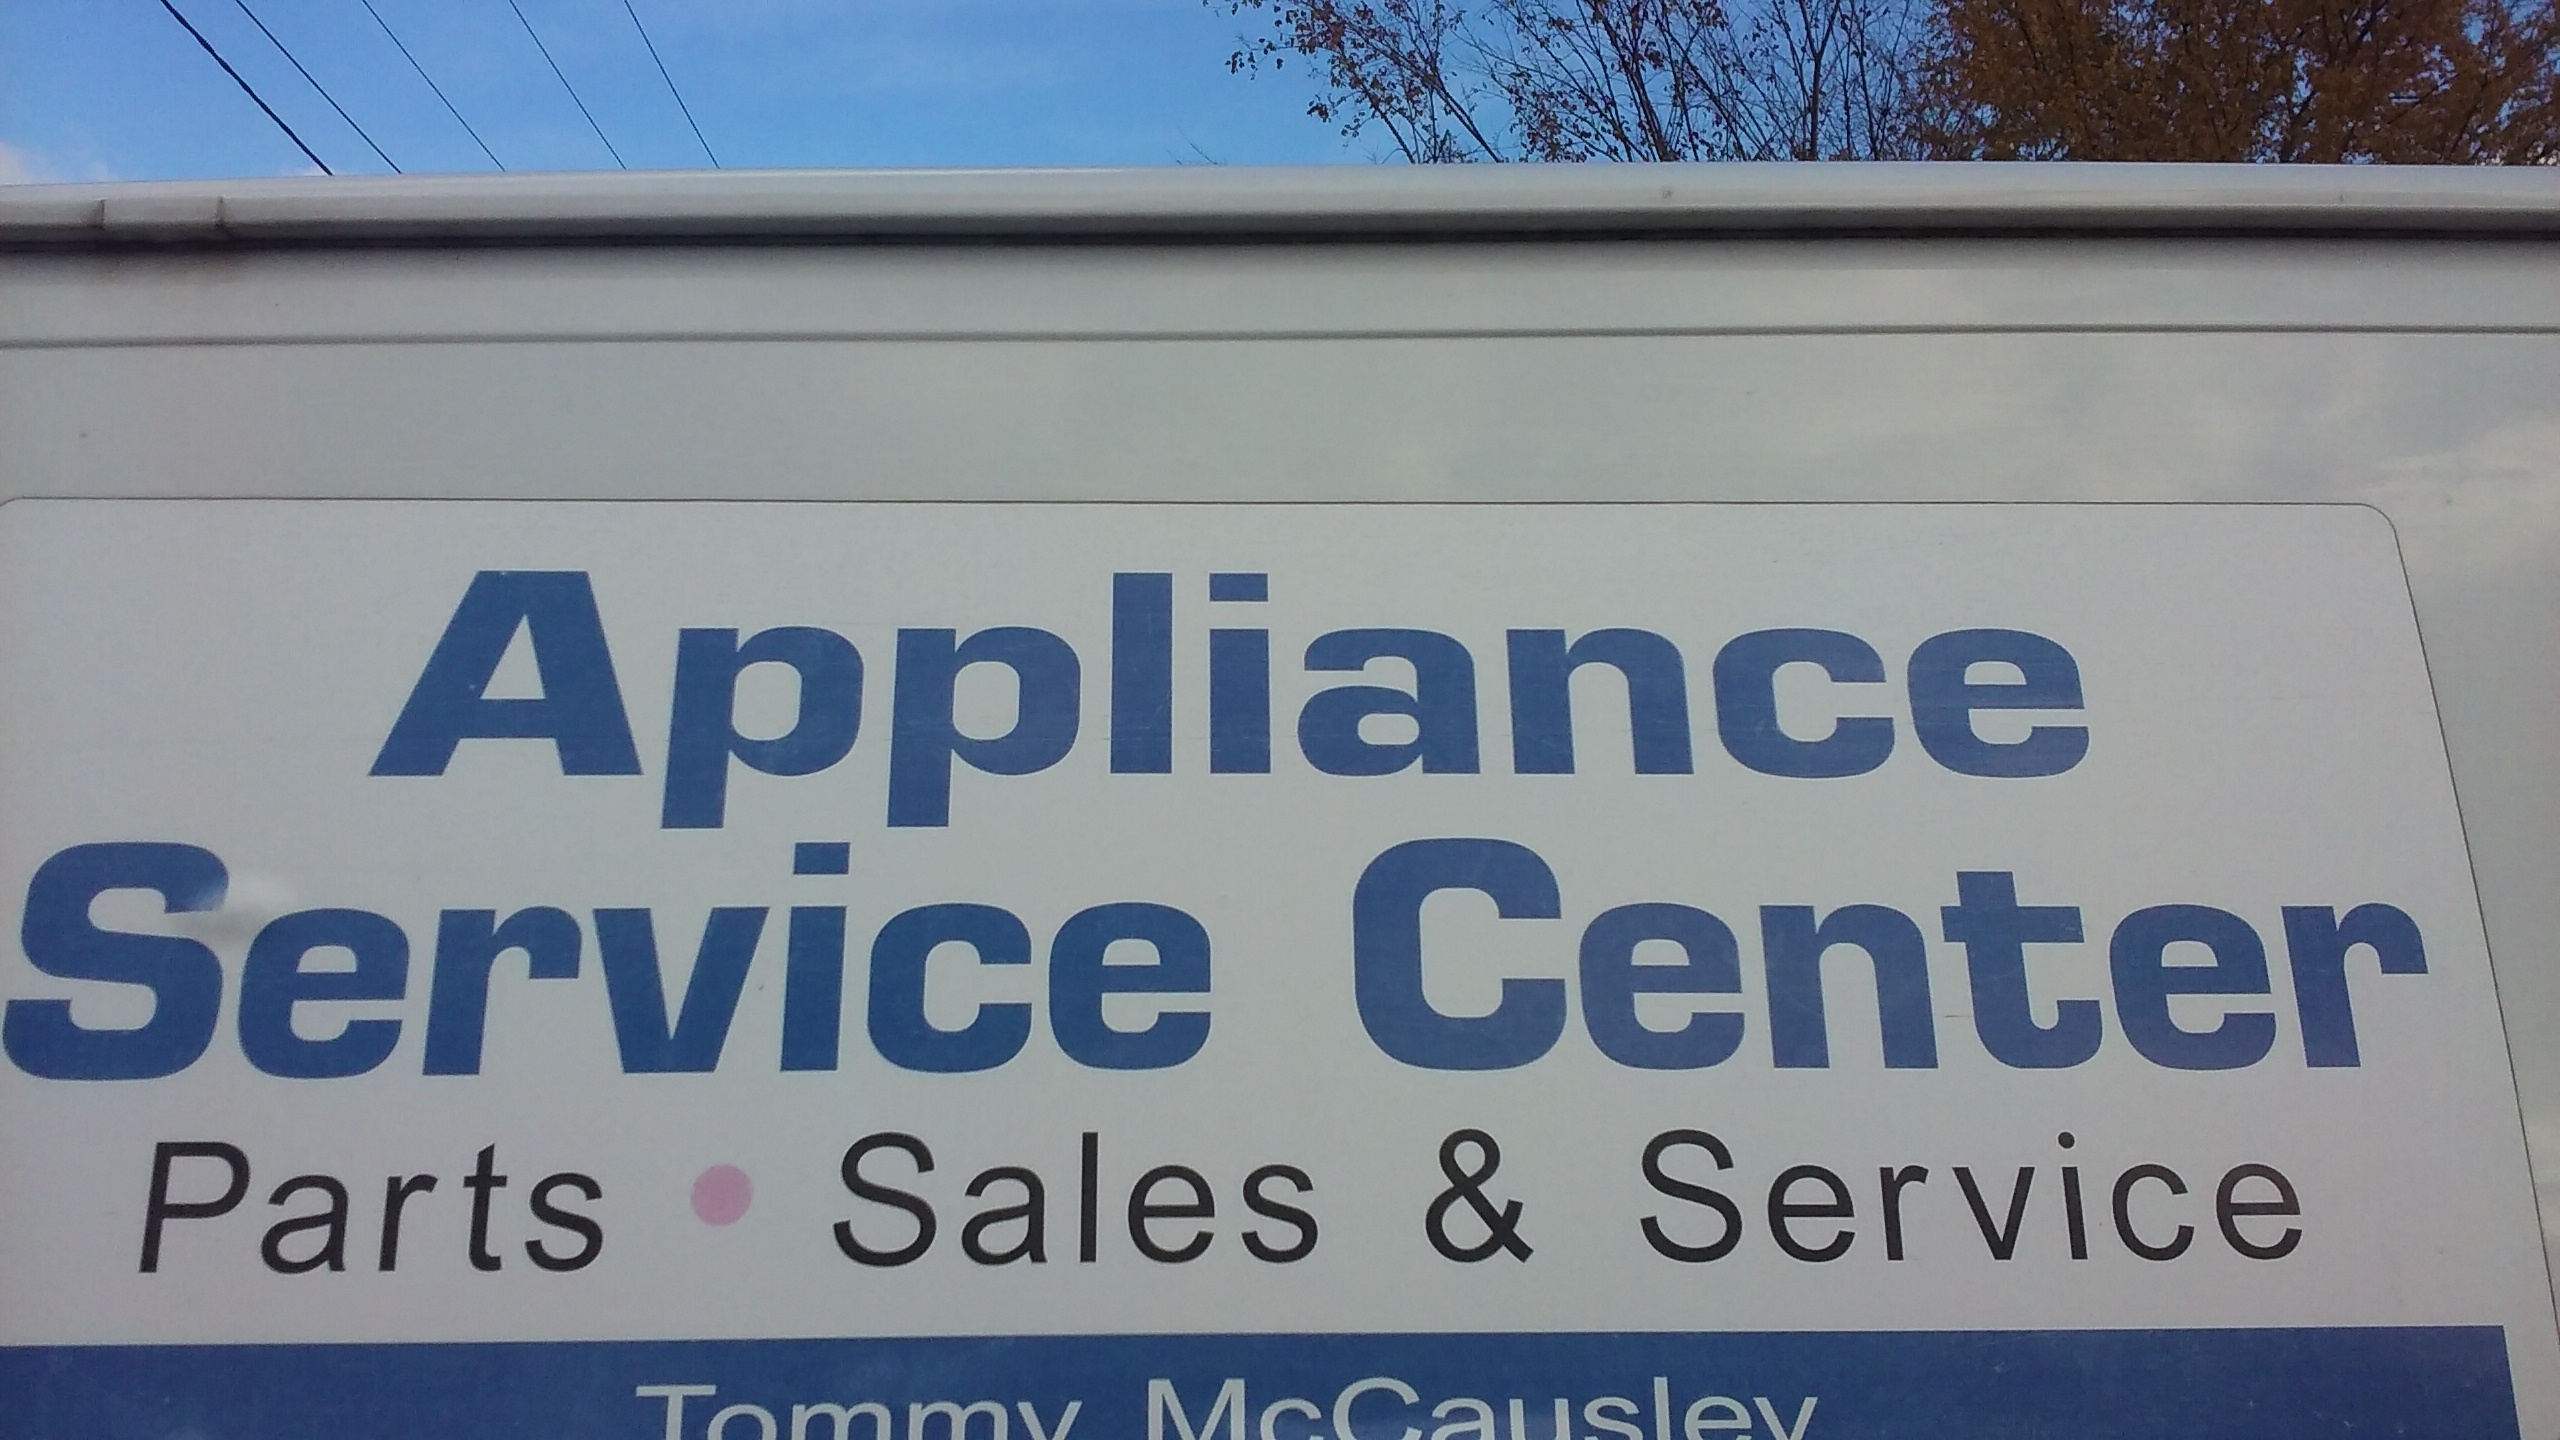 Appliance Service Center 201 Hall Ave Suffolk Va 23434